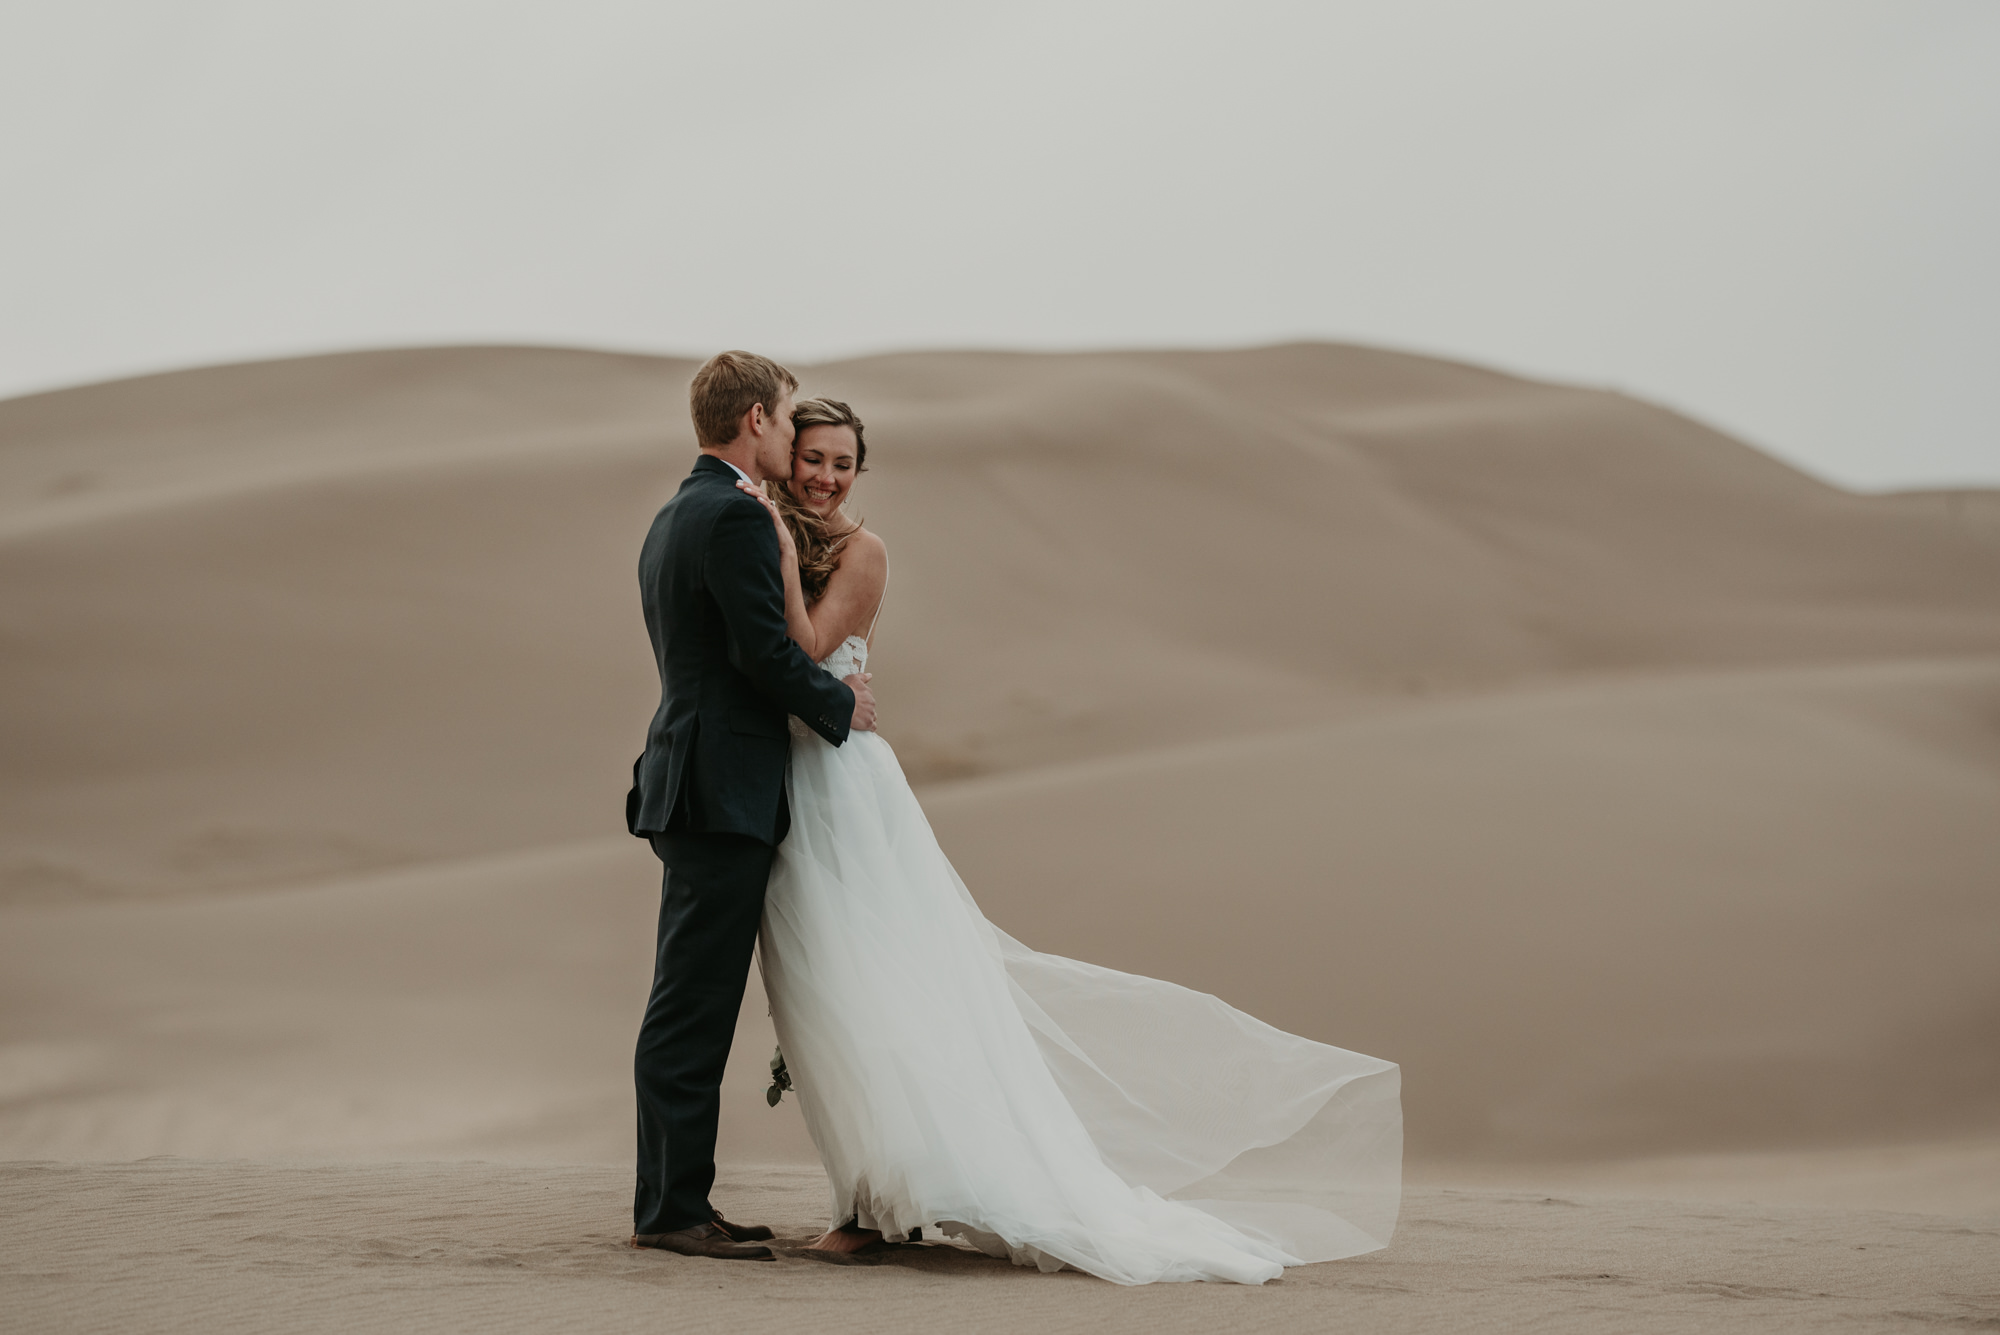 This is my favorite wedding photo at the dunes.